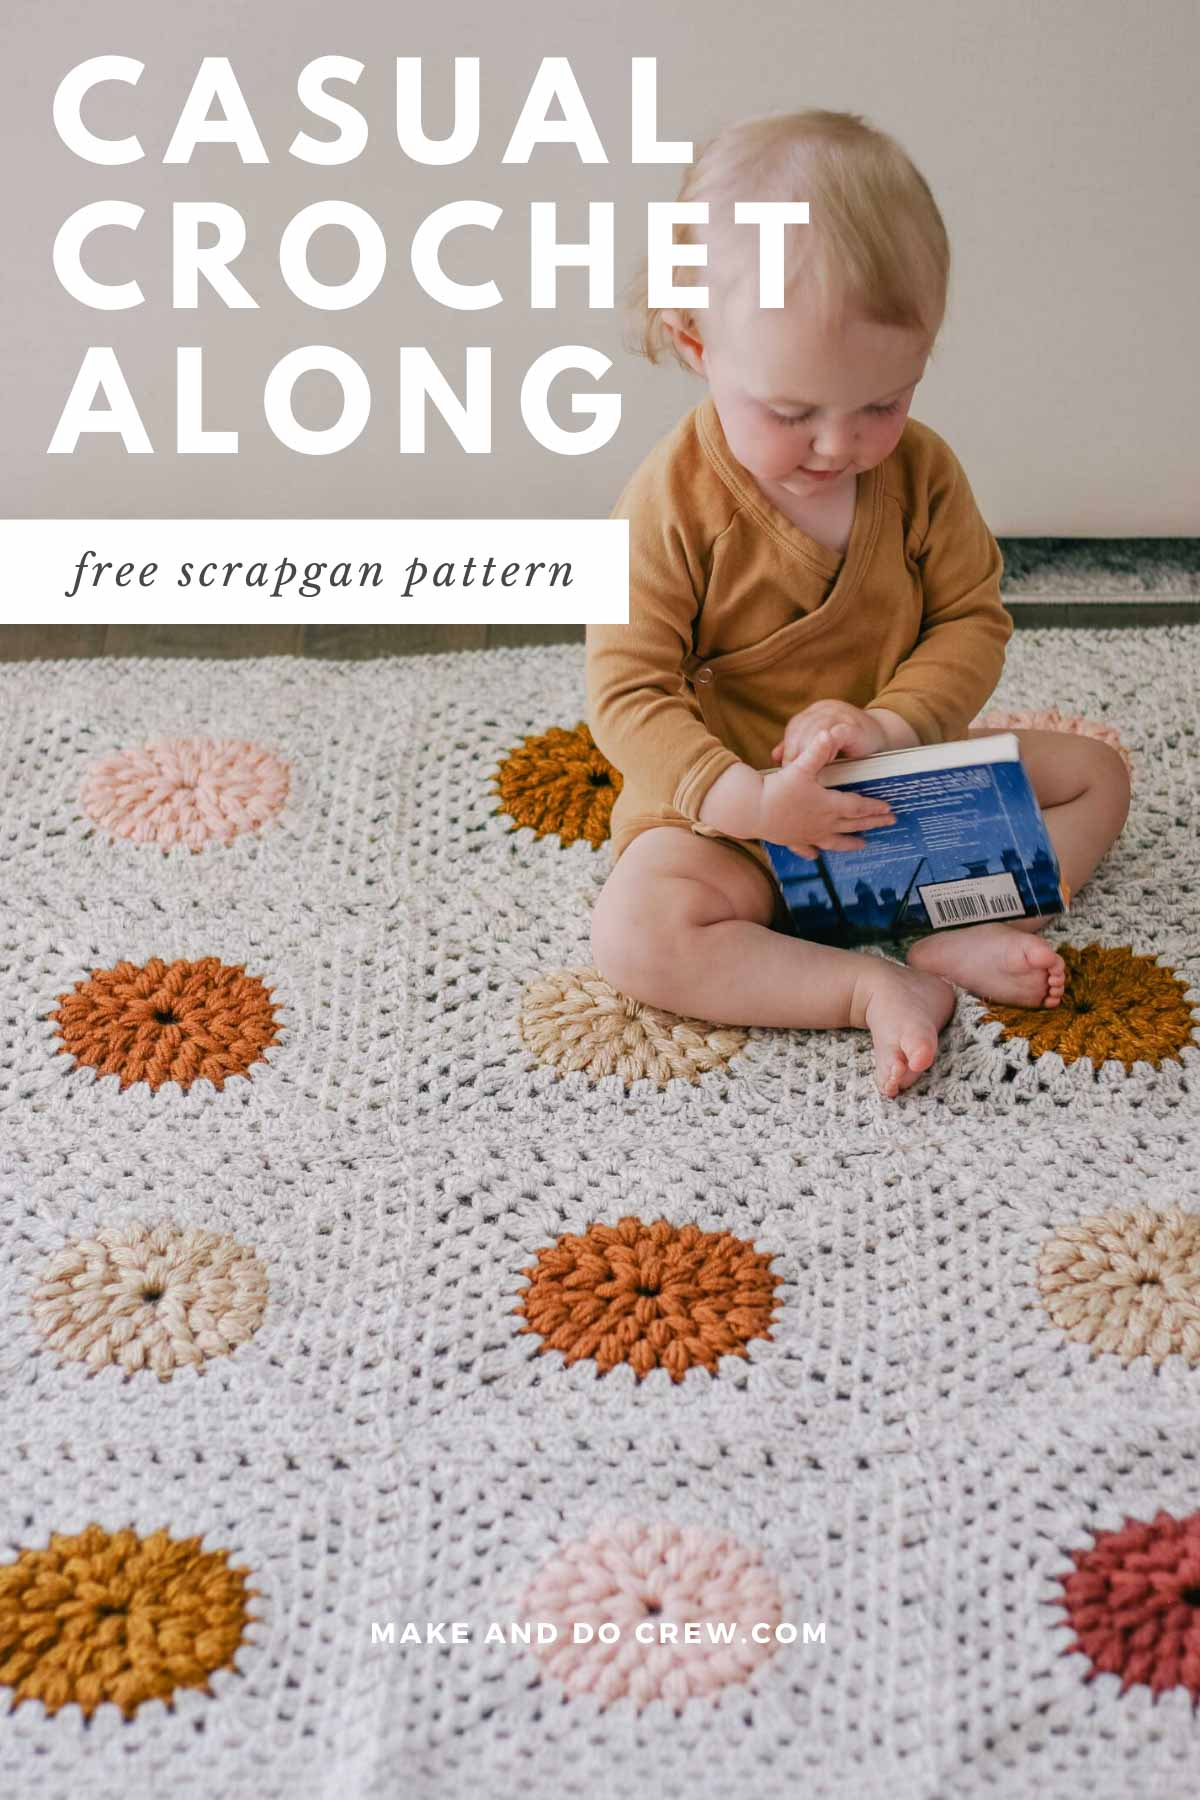 Baby sitting on a modern crochet granny square blanket made with Lion Brand Wool Ease yarn scraps.